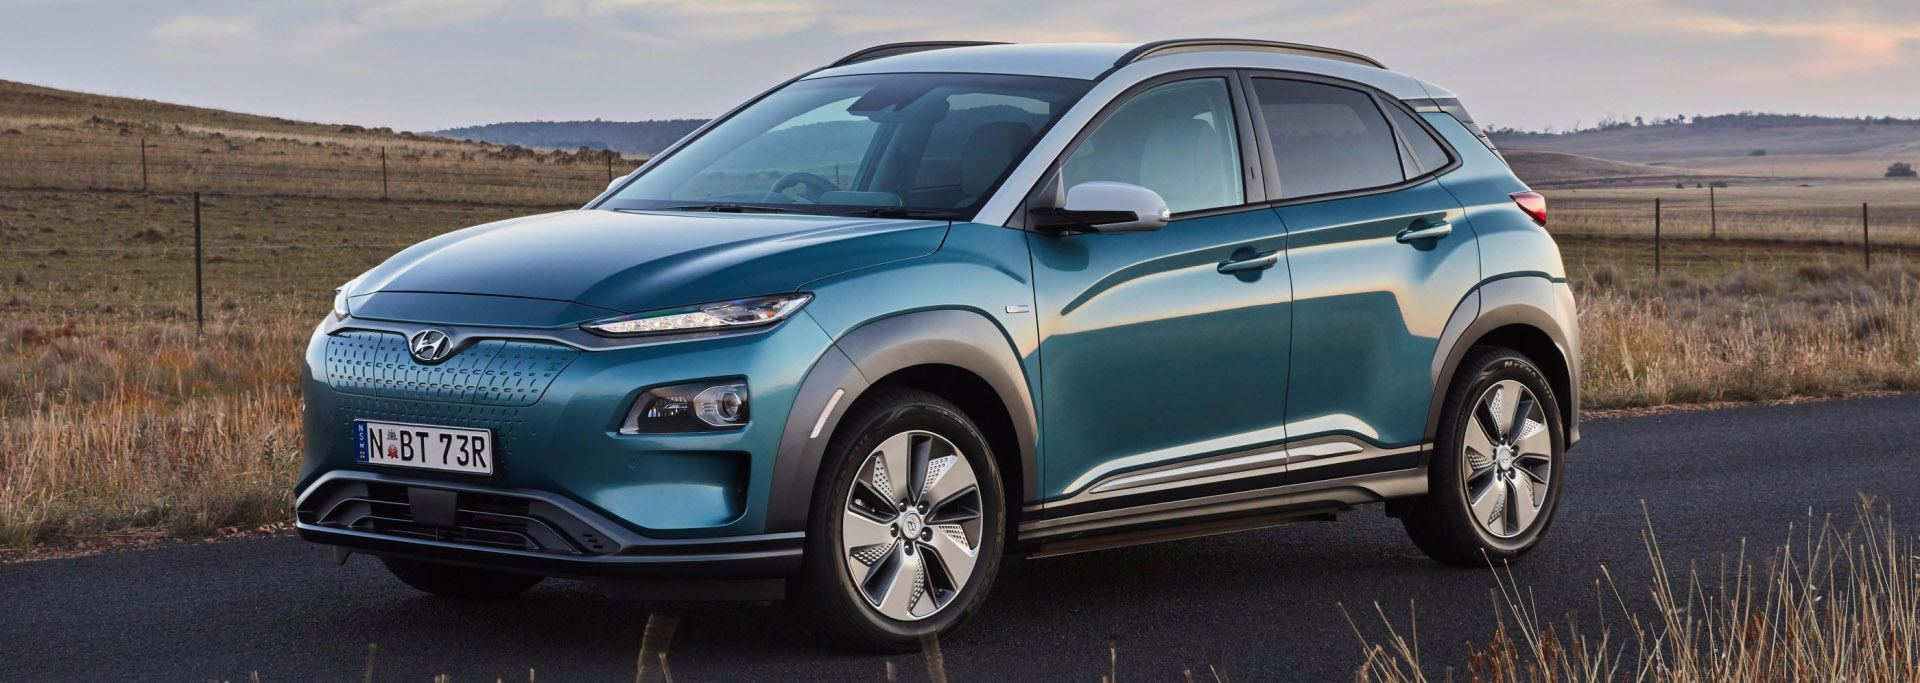 The 2019 Kona Electric is available at Pathway Hyundai in Orleans ON